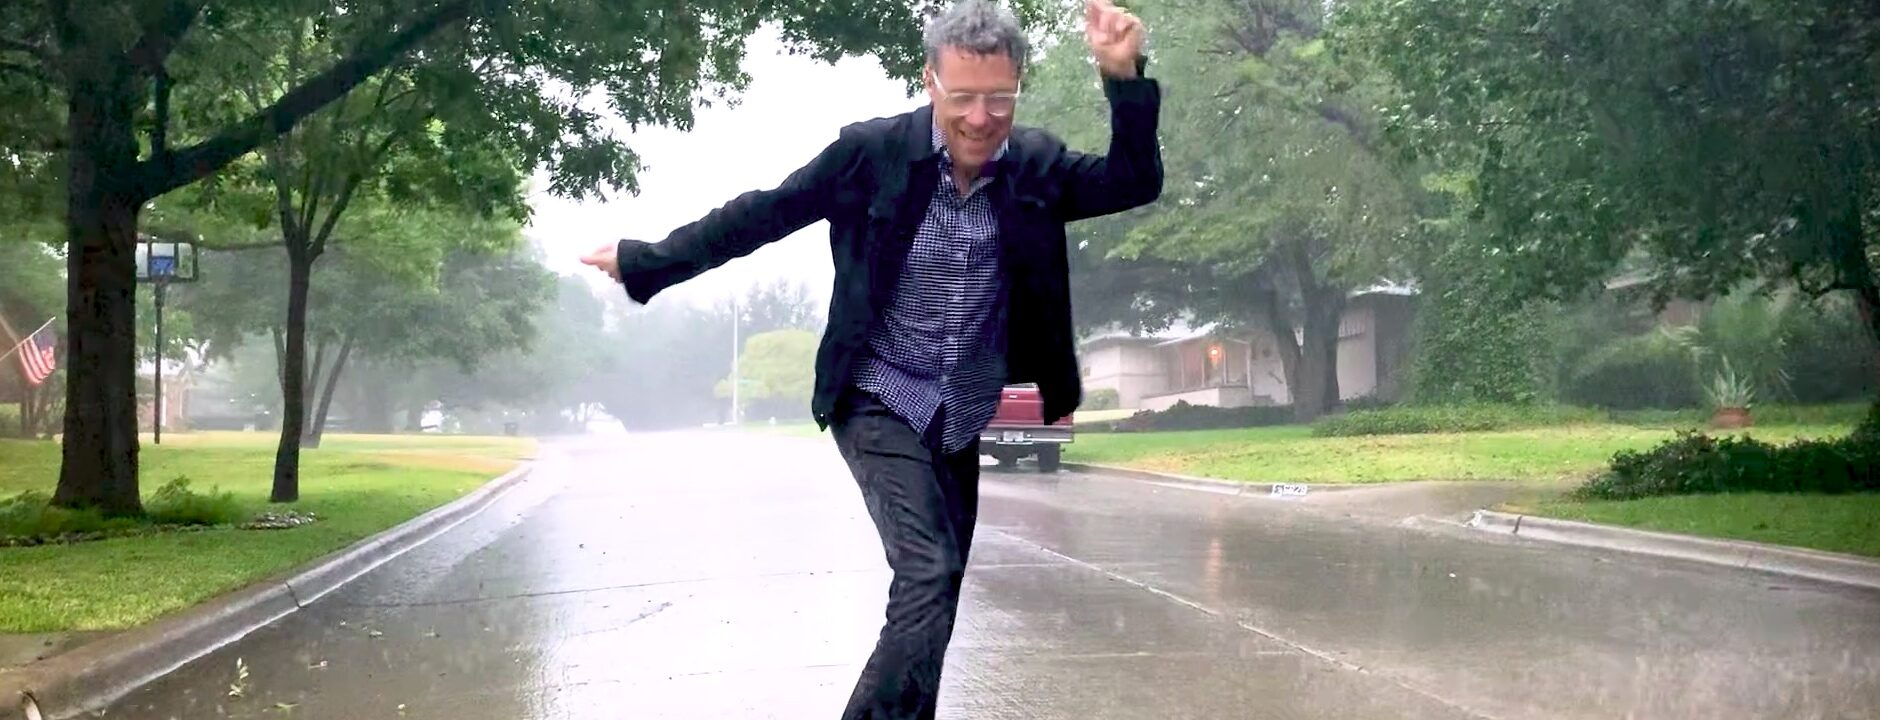 Brad Singing in the Rain